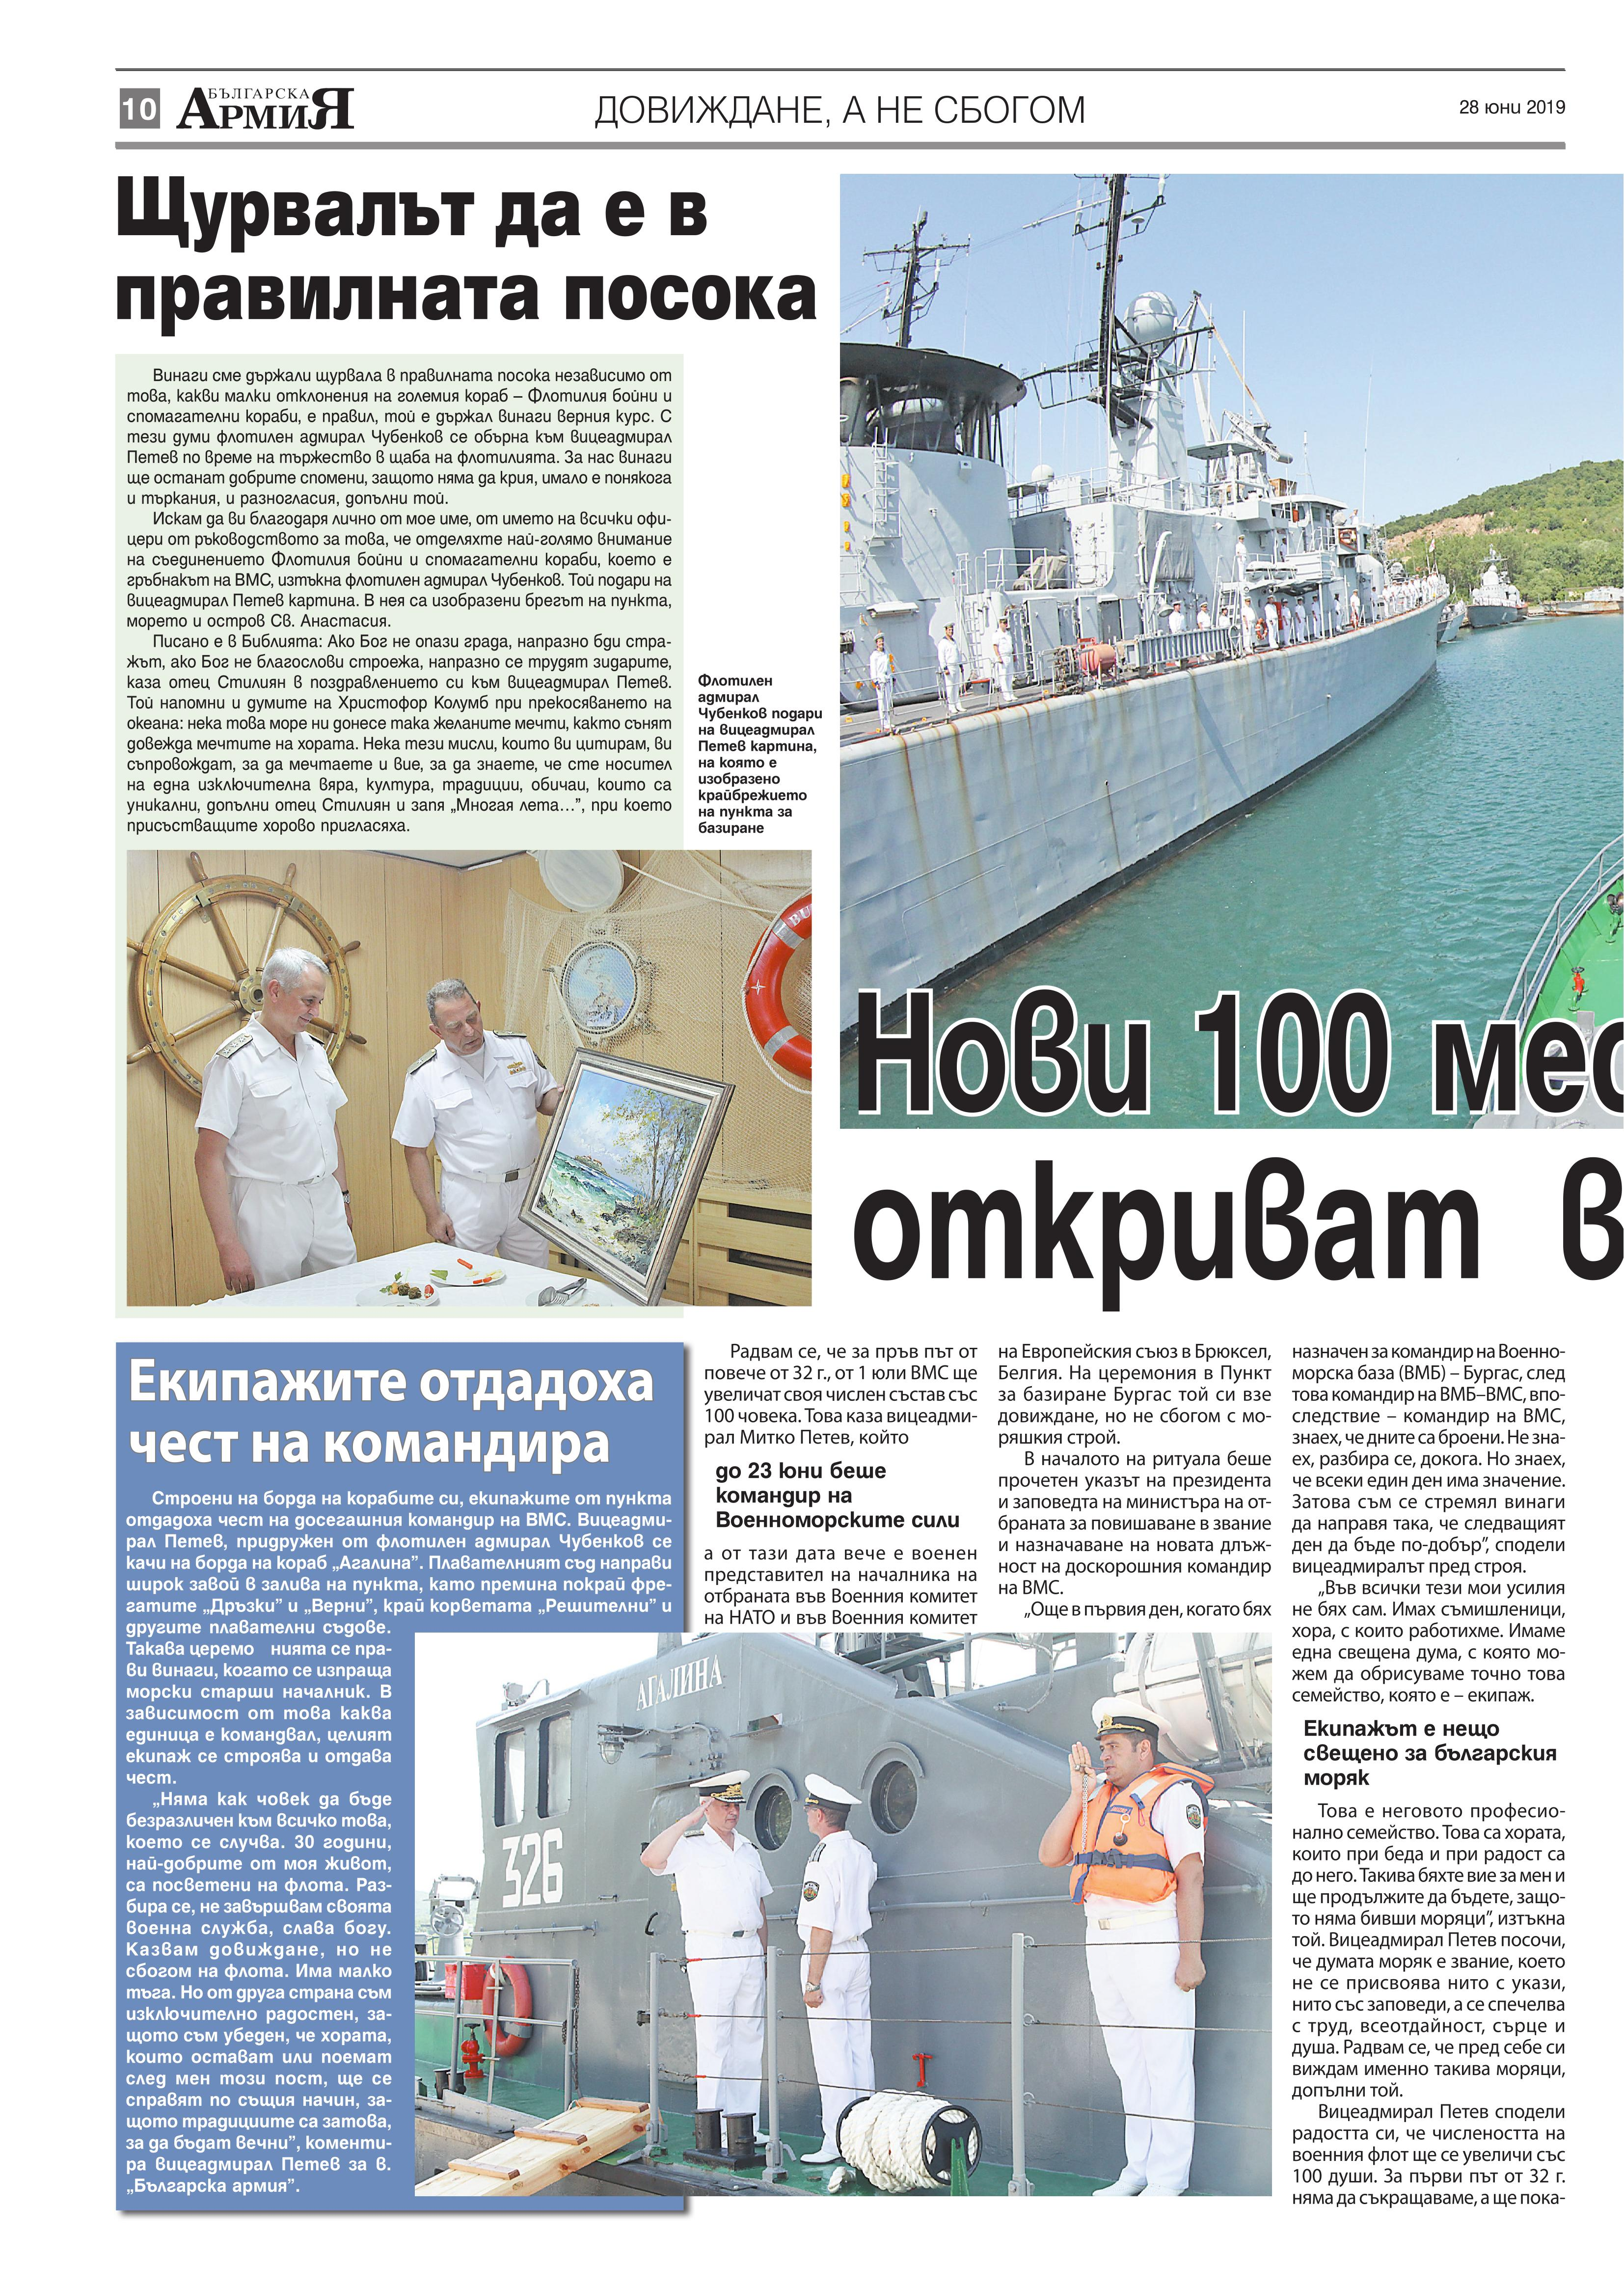 https://armymedia.bg/wp-content/uploads/2015/06/10.page1_-101.jpg